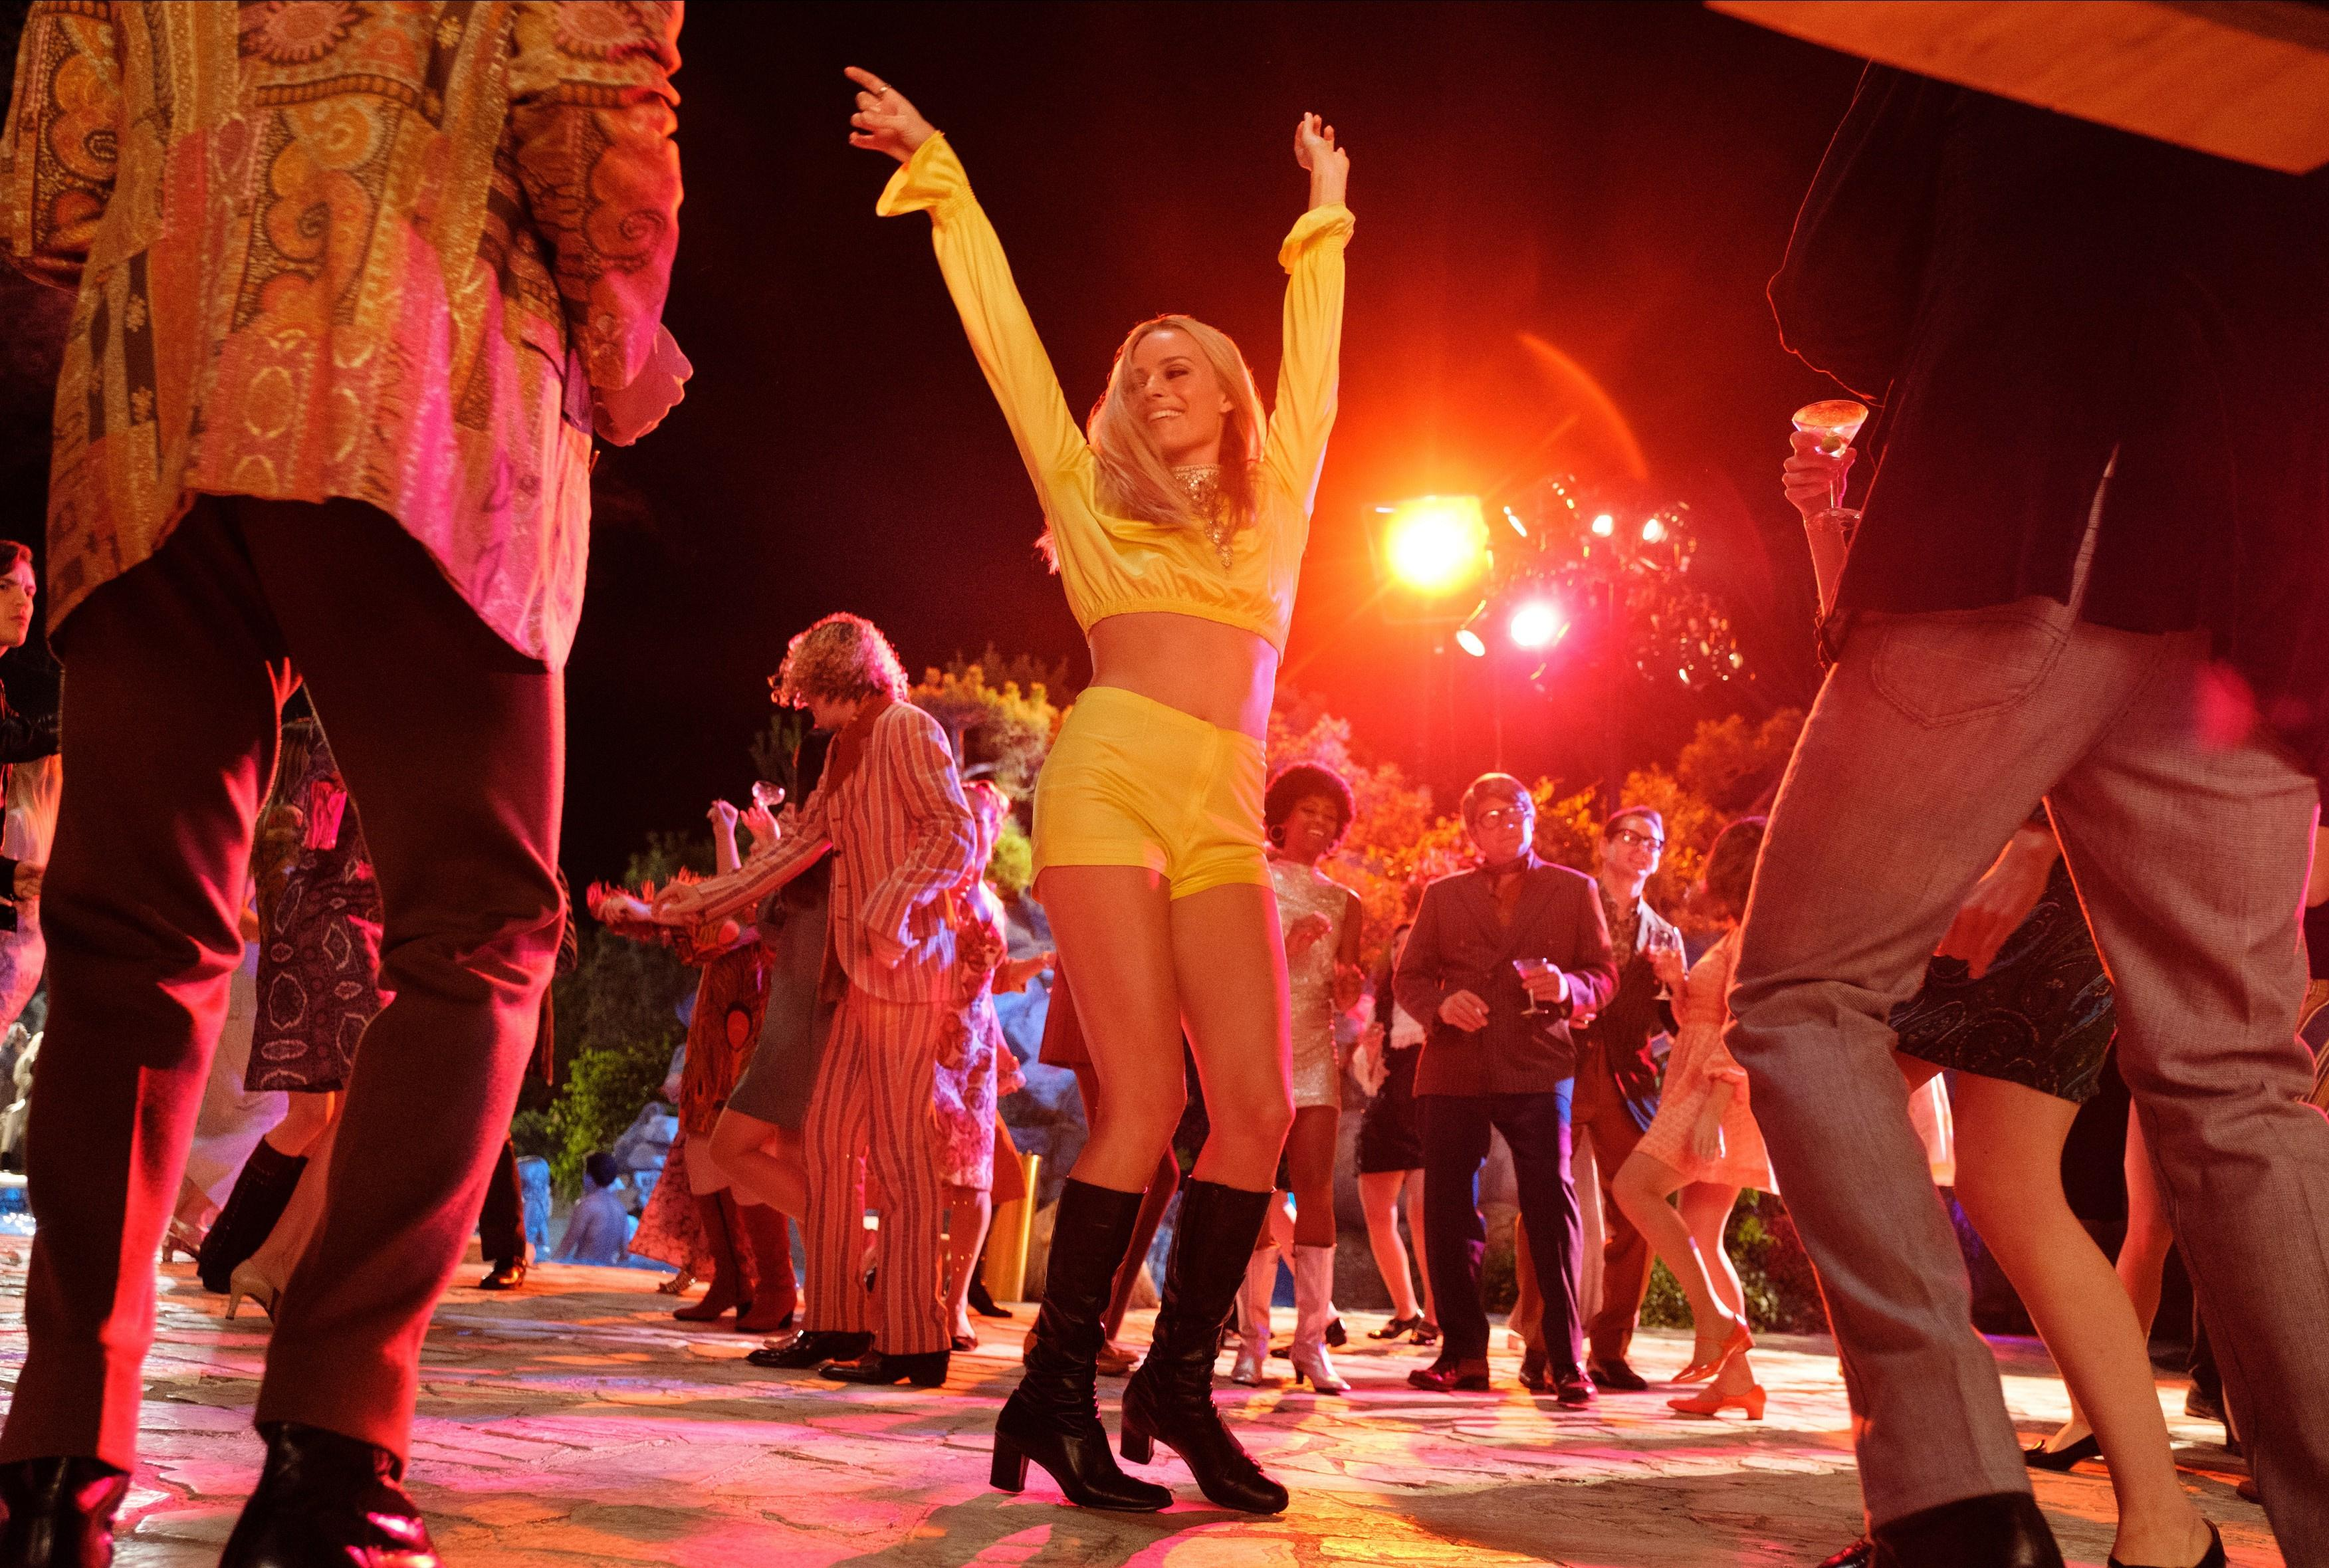 The 50 best films of 2019 in the US: No 7 – Once Upon a Time in Hollywood